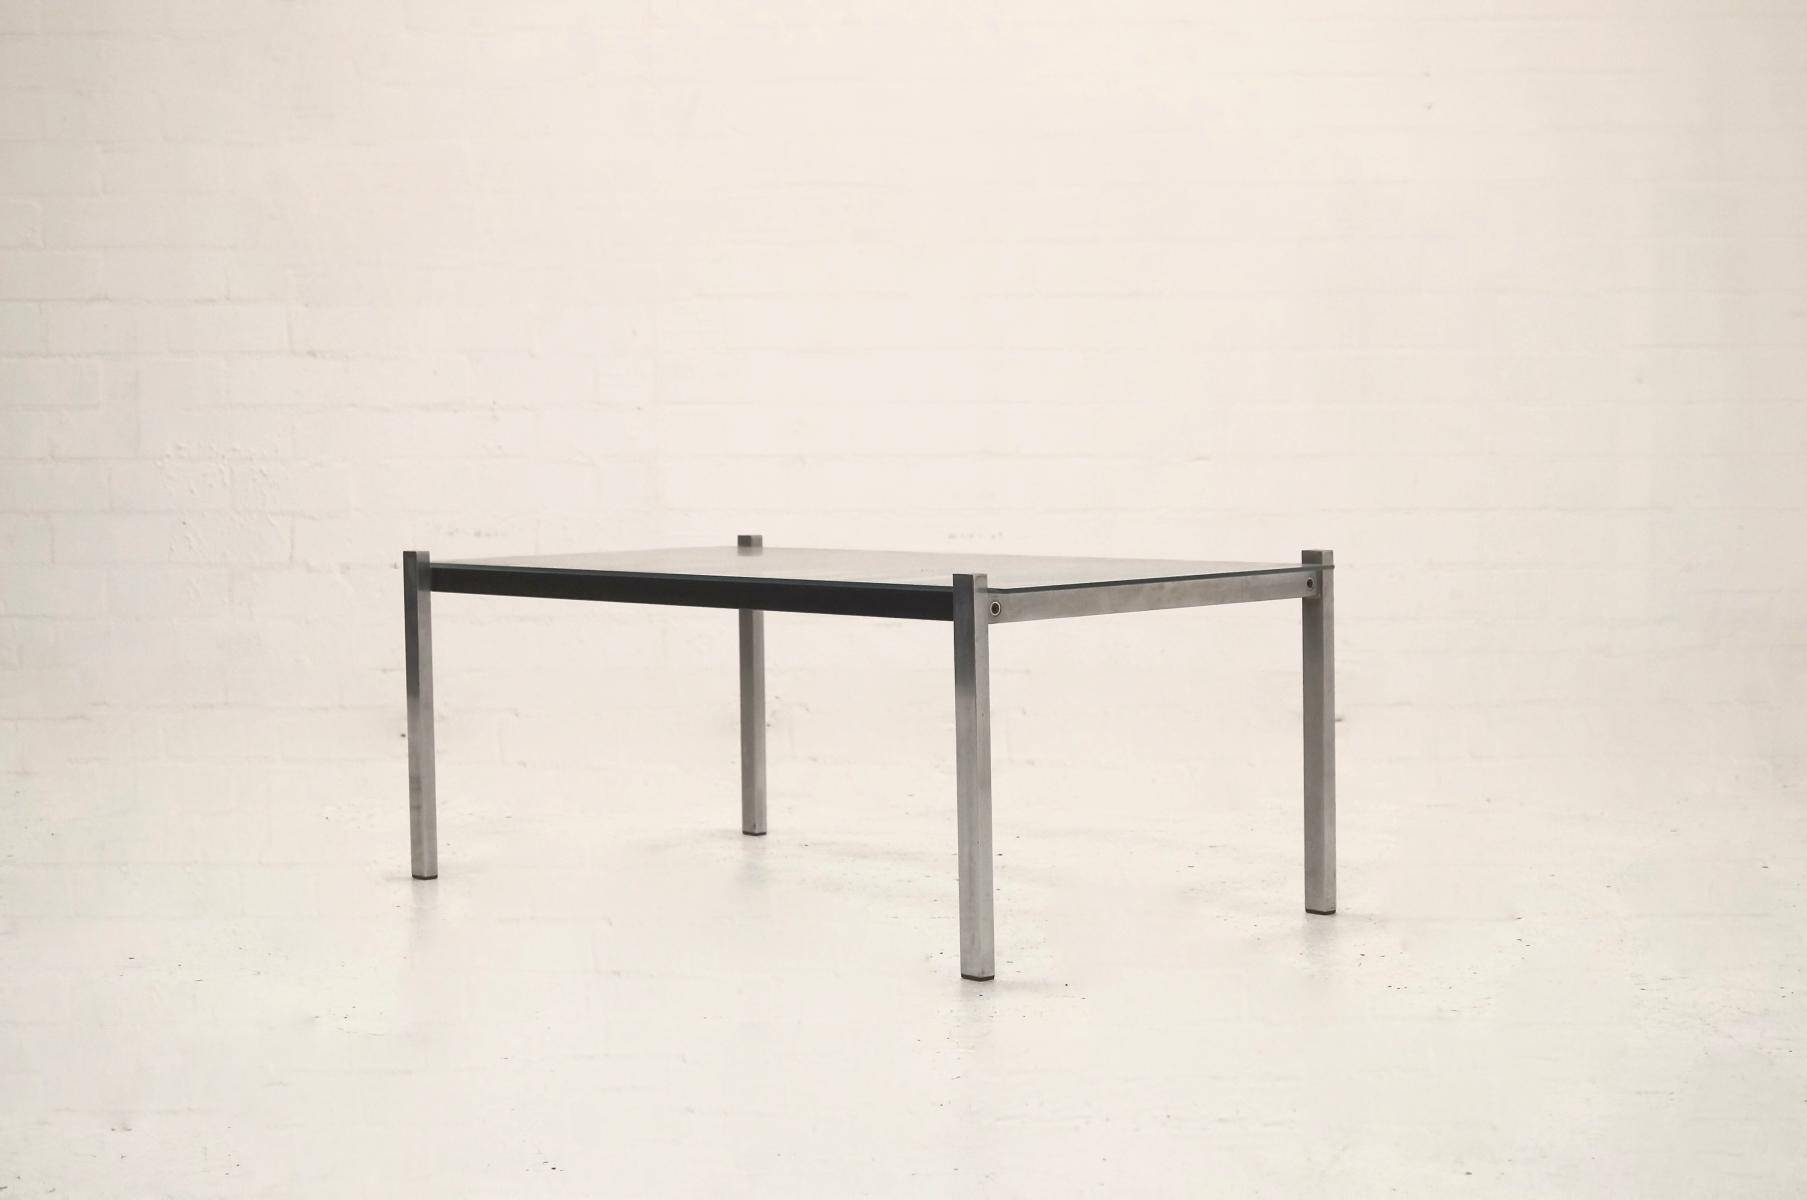 Mid Century Modern Metal And Glass Coffee Table, 1960S For Sale At Within Steel And Glass Coffee Tables (View 18 of 30)